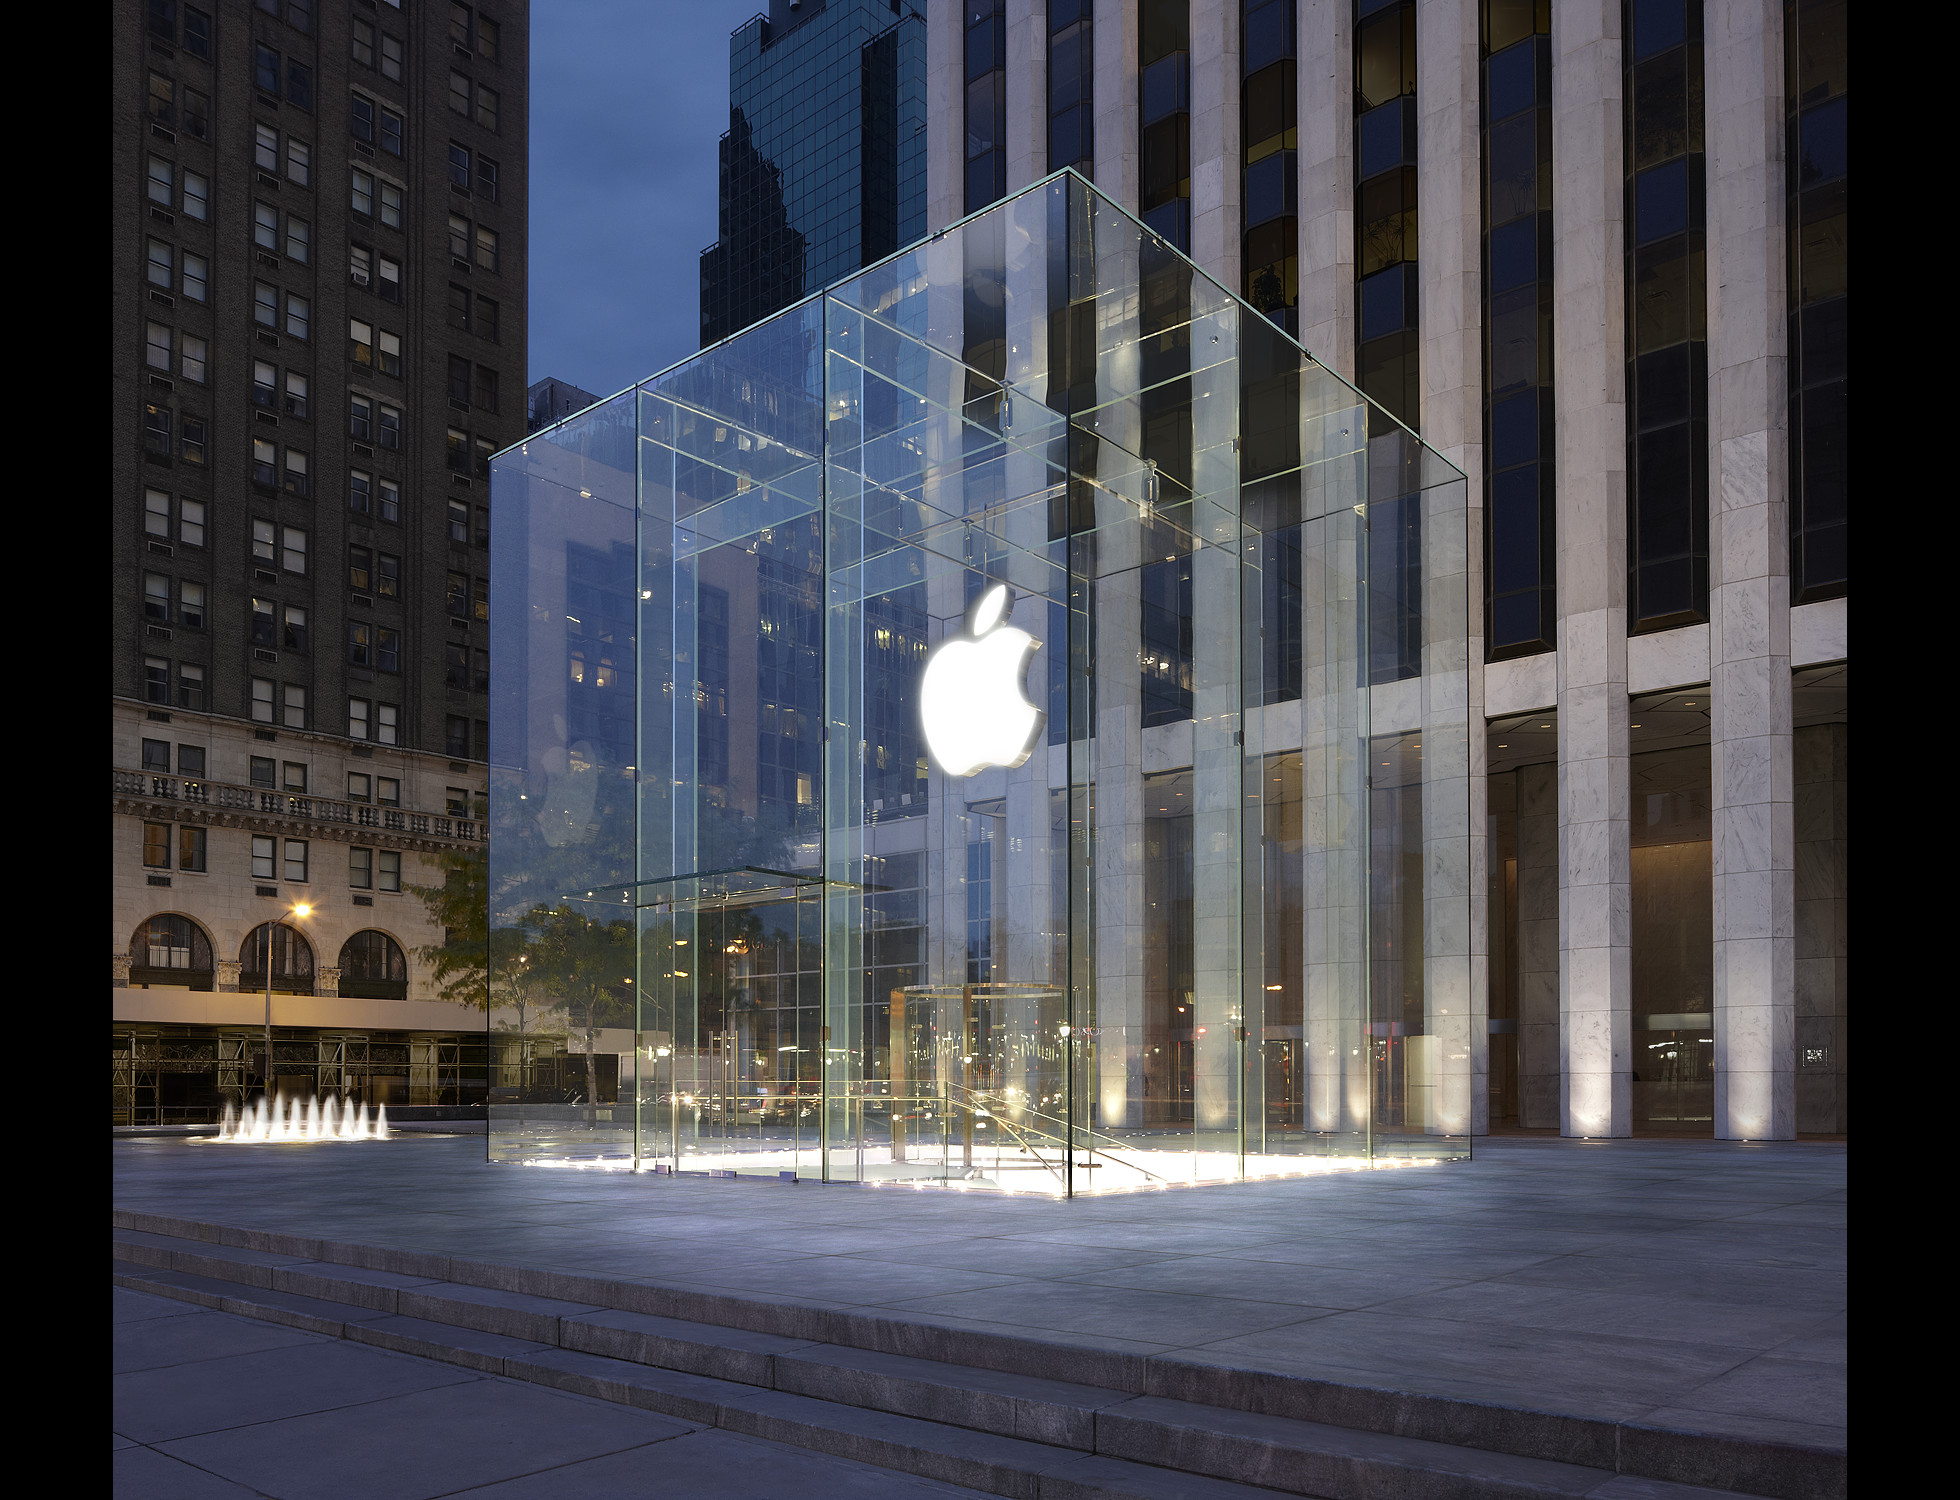 Apple Store fith avenue NY